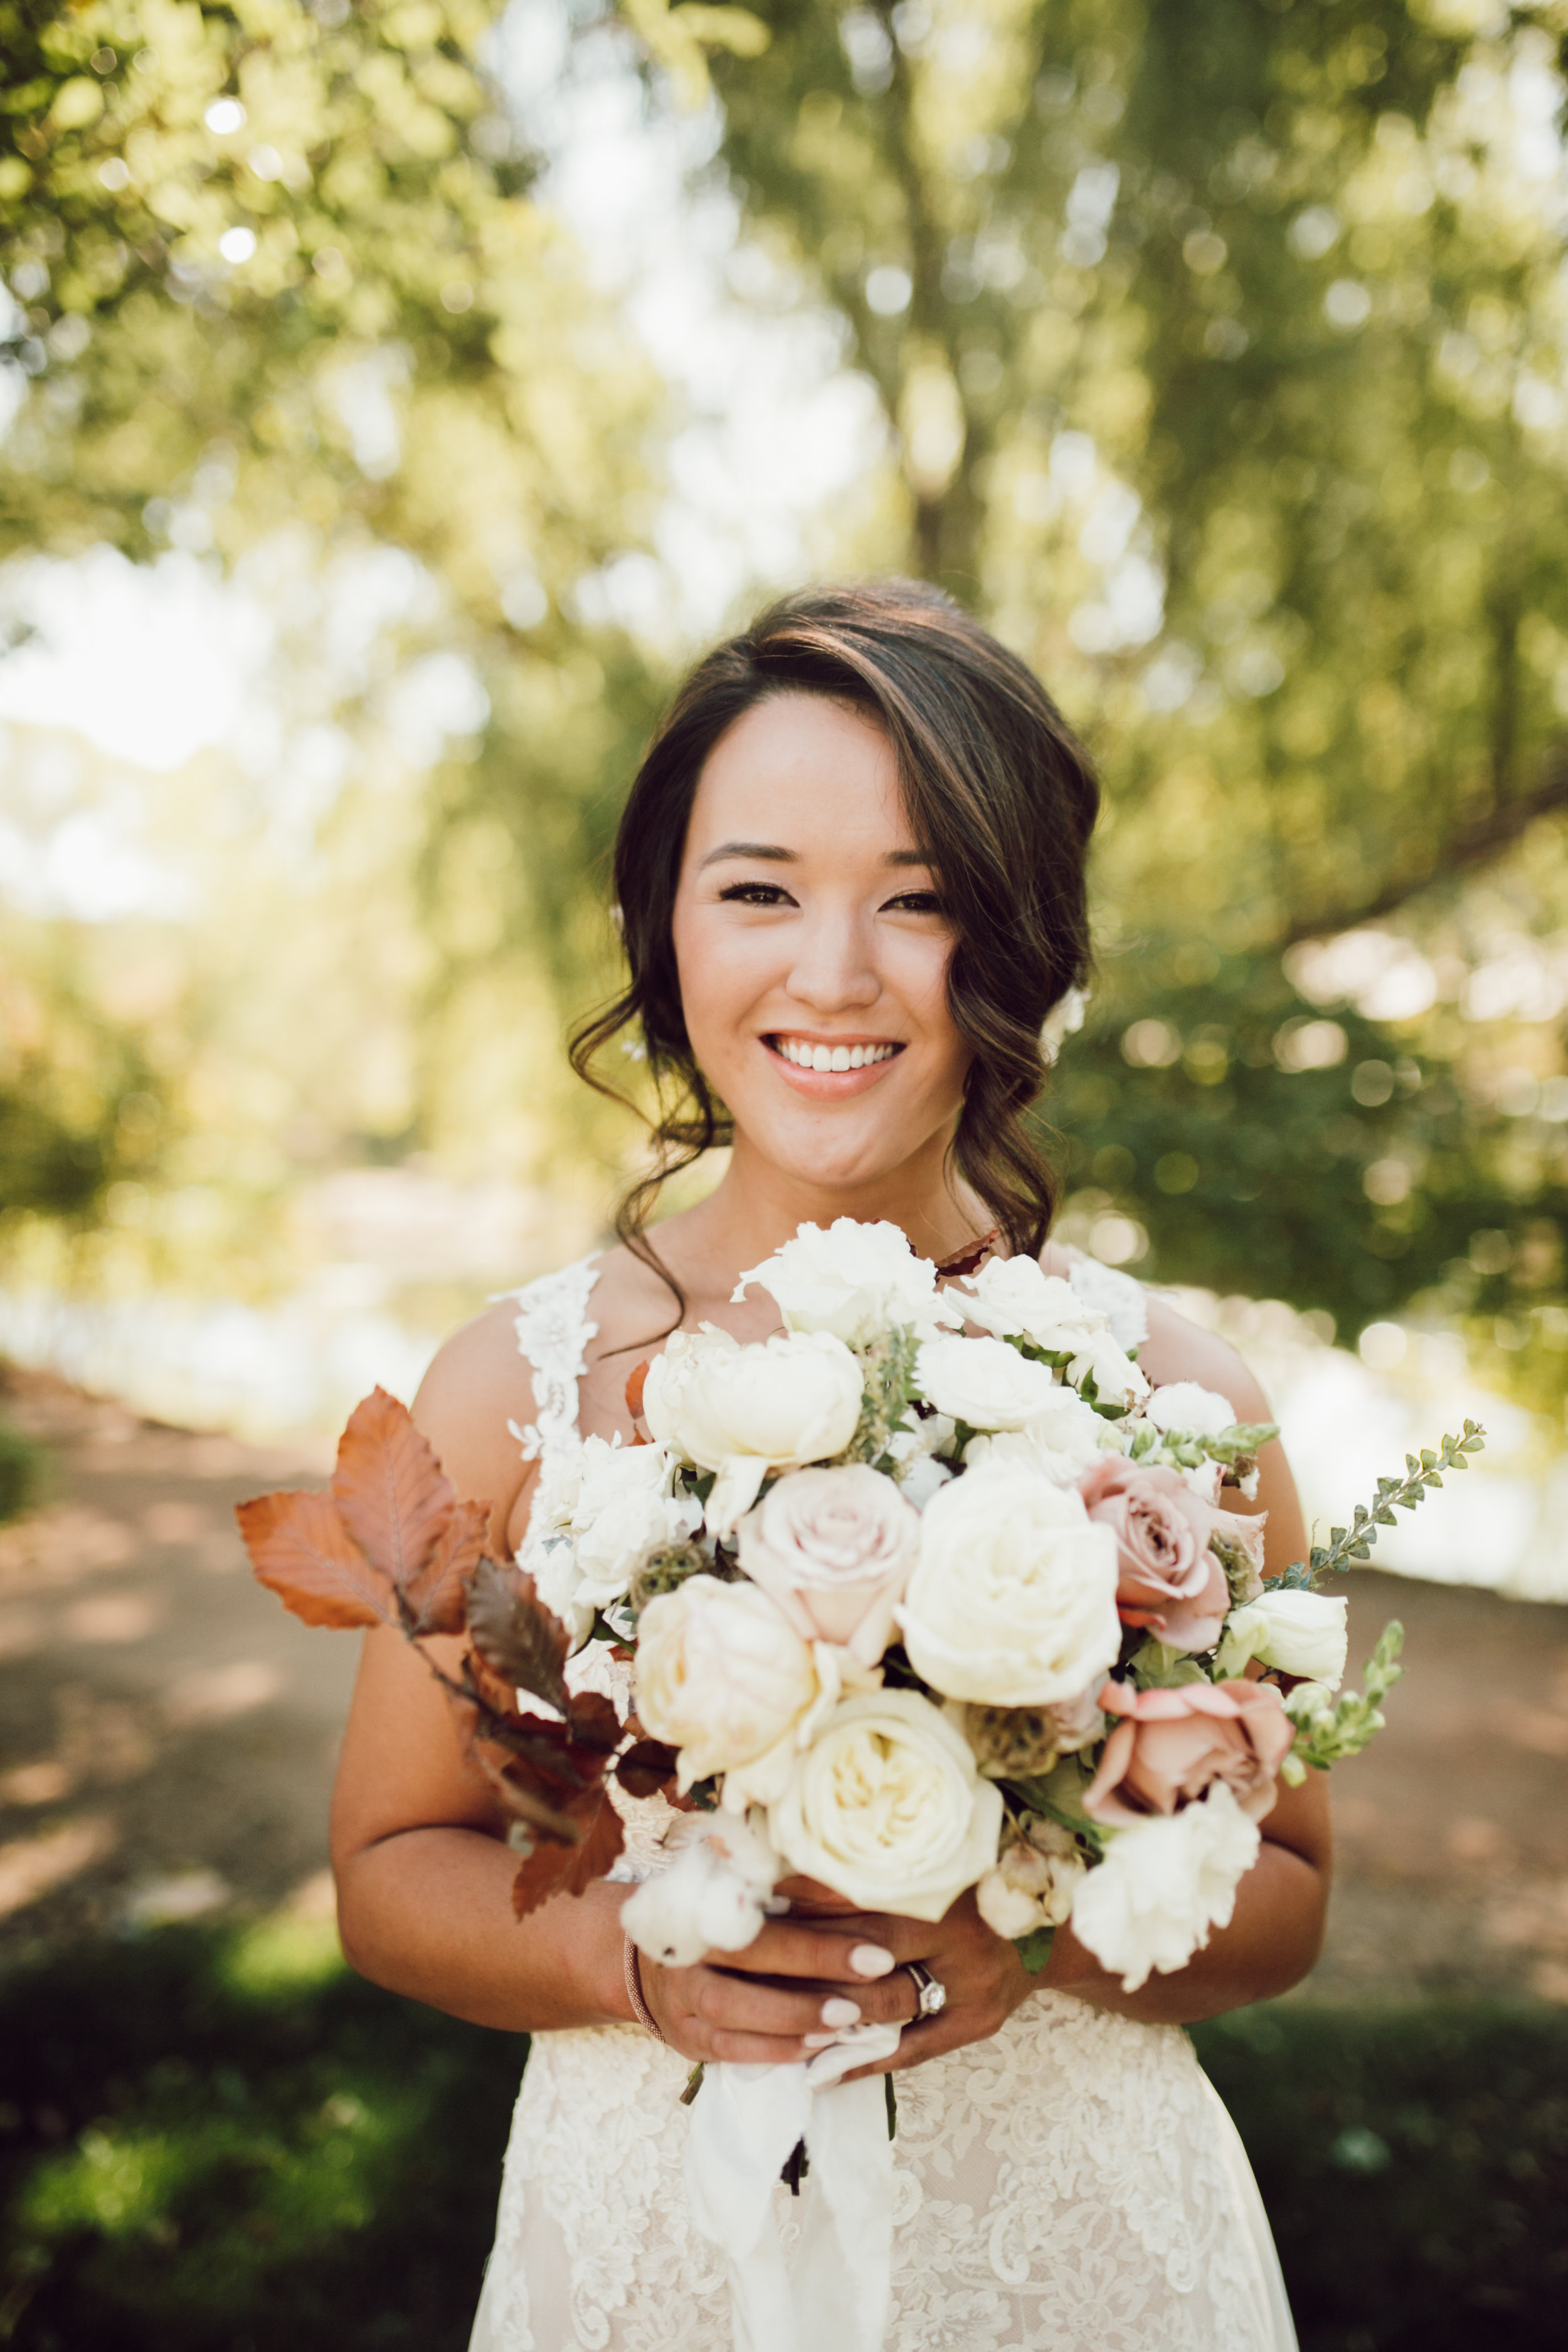 DA Ranch Fall Wedding - Bridal Bouquet